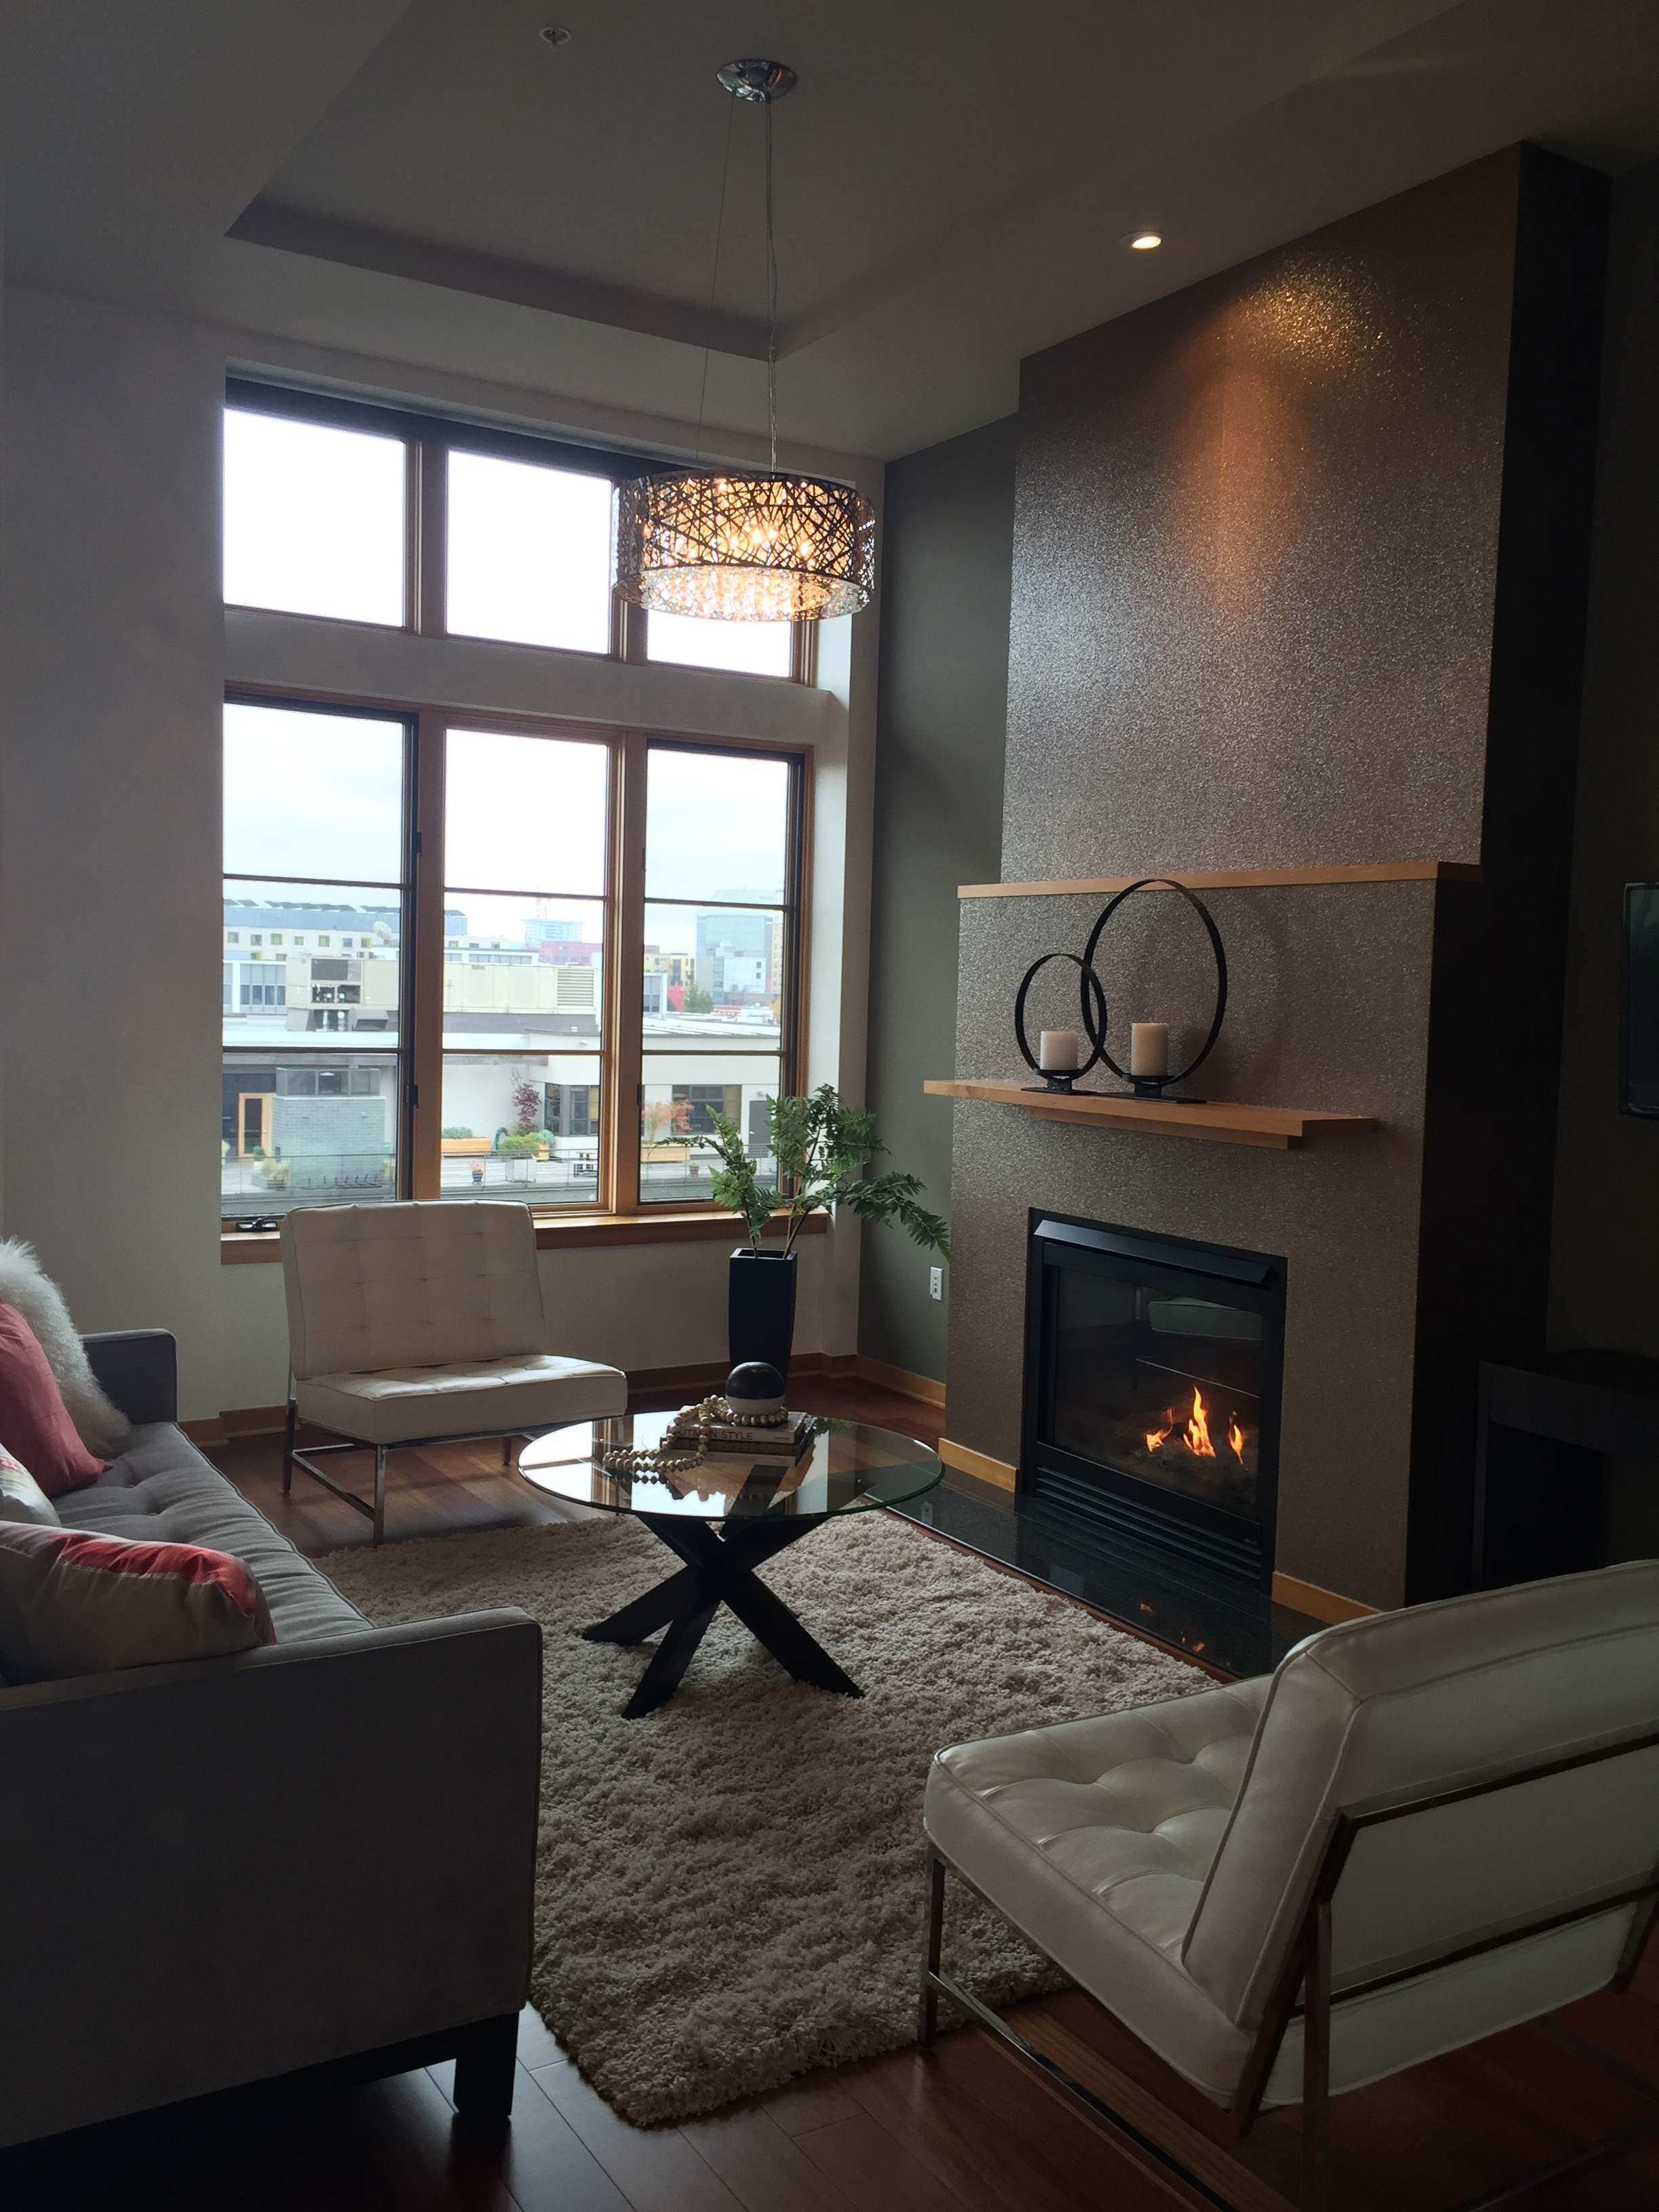 This condo in the Pearl District was absolutely amazing! It was two stories with perfect views, warm textures, and beautiful rooms that never seemed to end. This fireplace was covered with a matte glitter, which gave it a luxe yet sophisticated look.